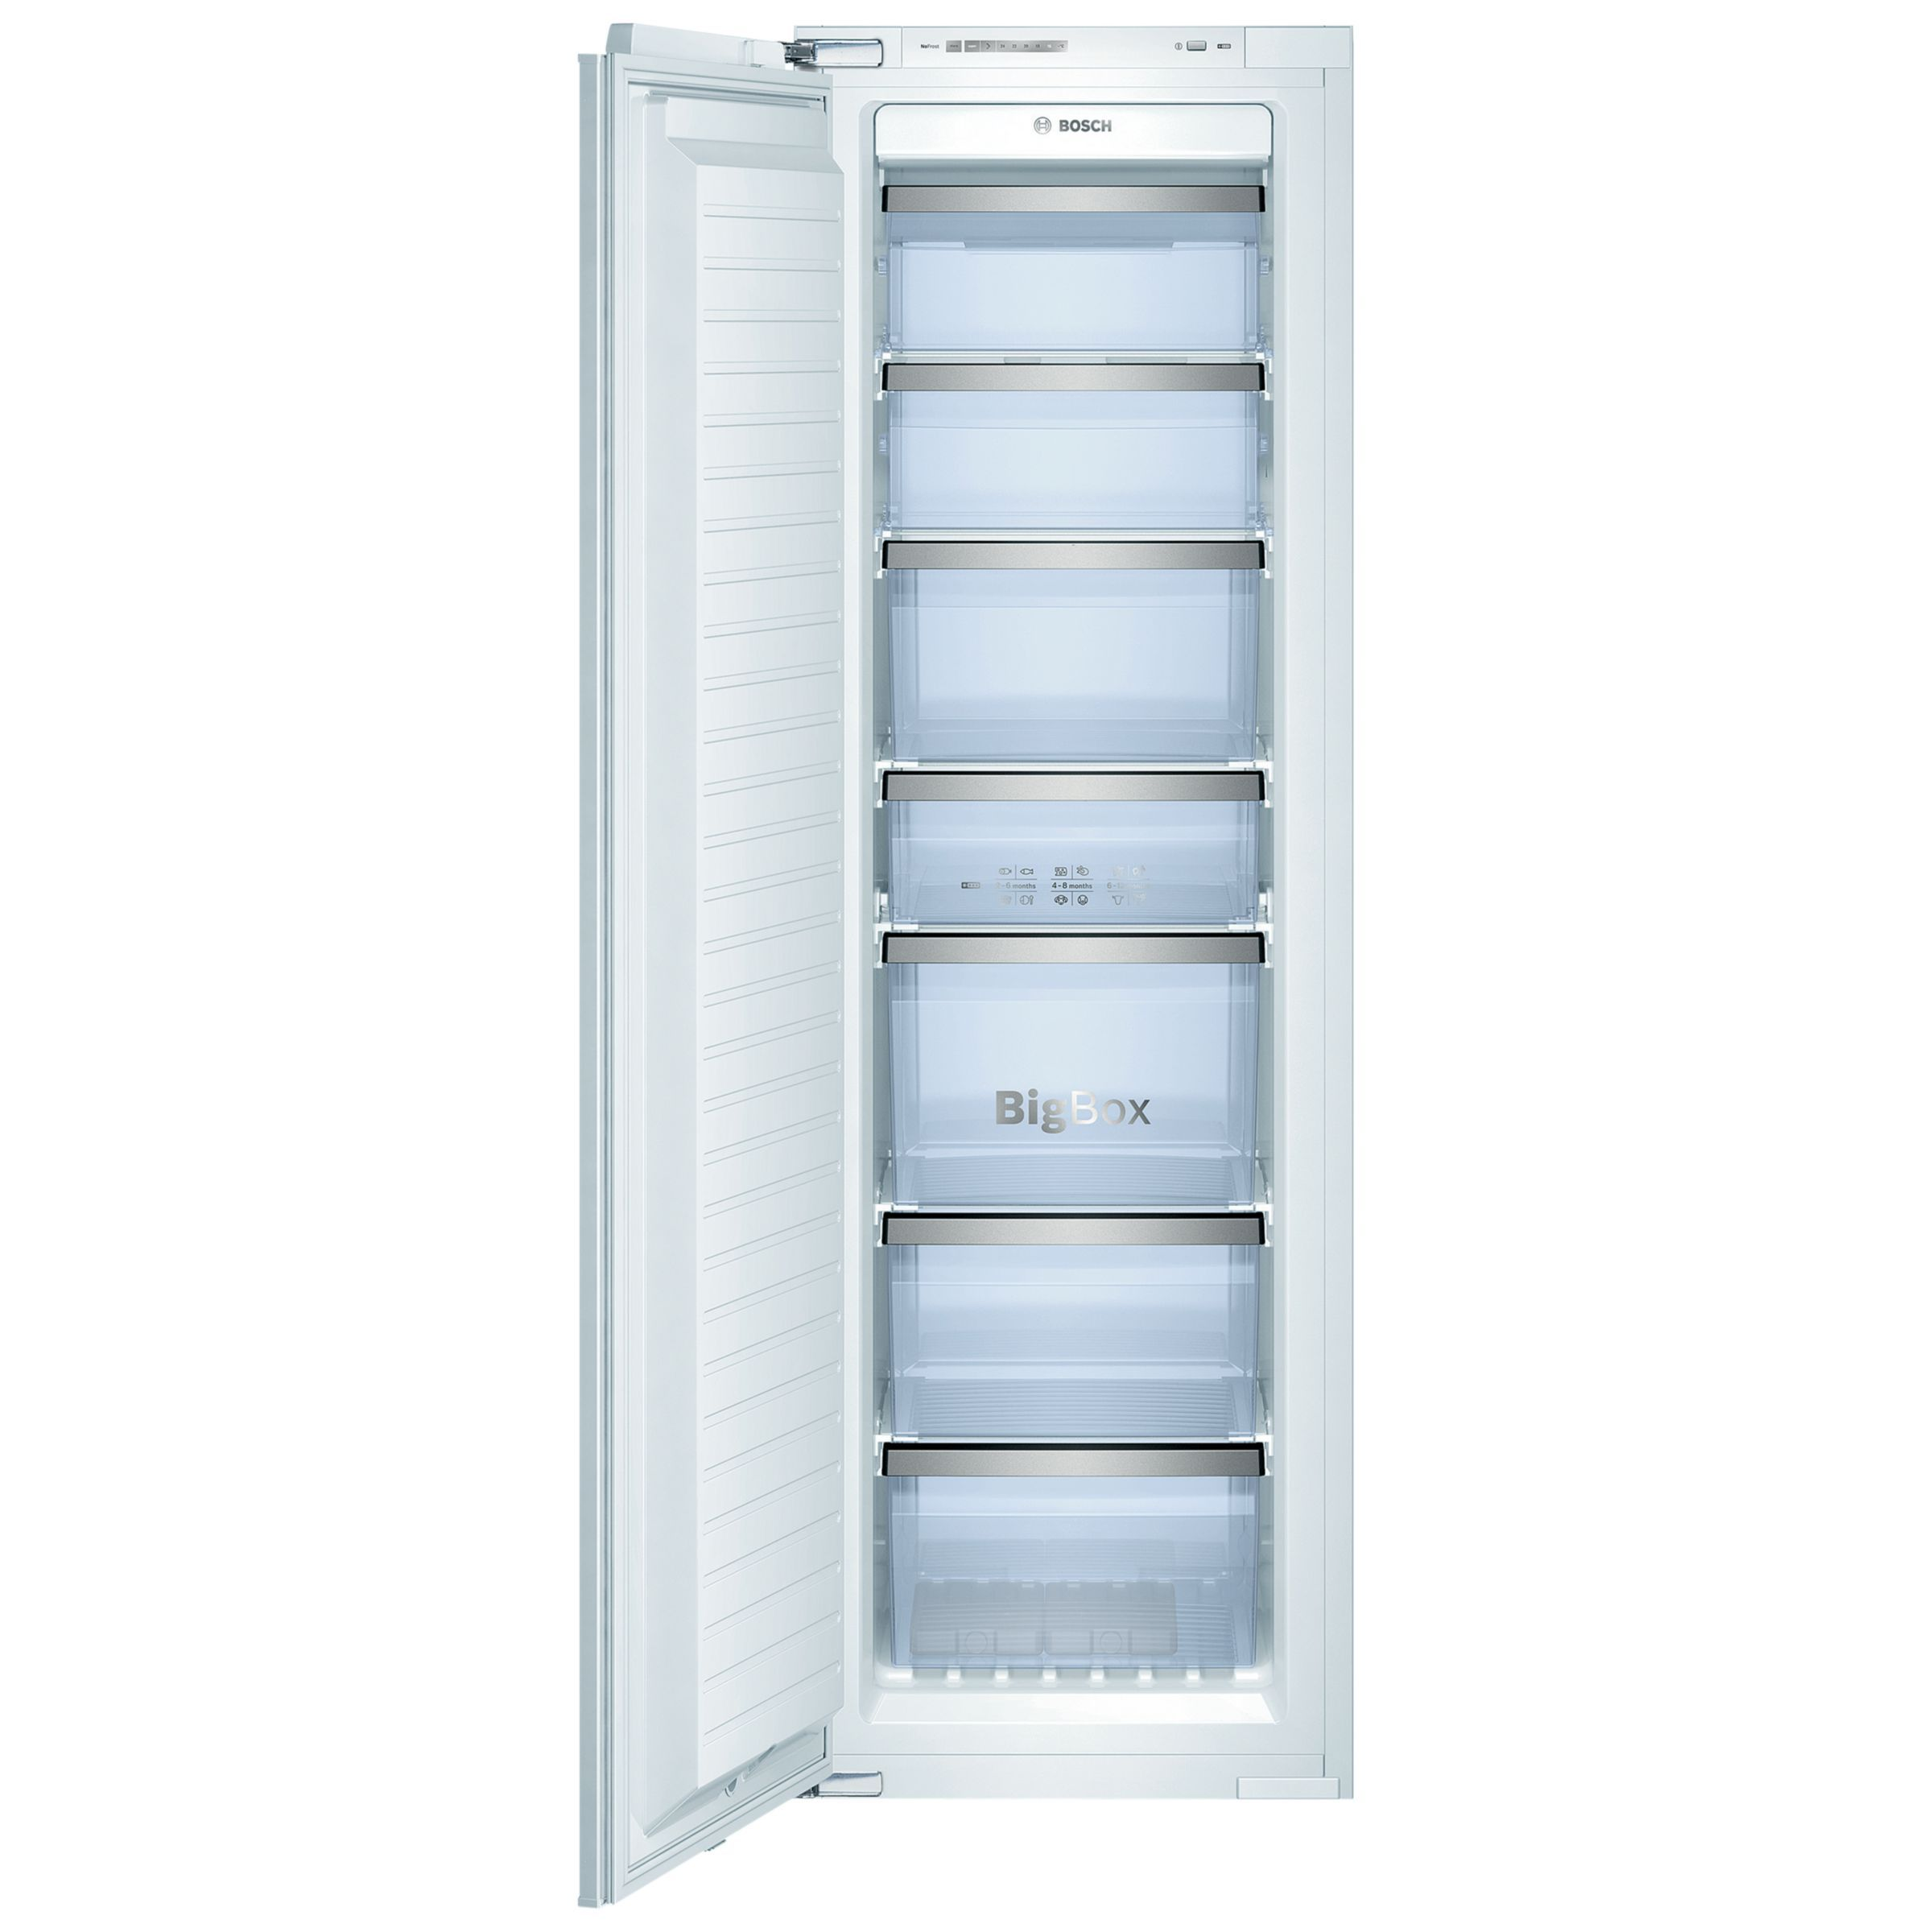 Bosch GIN38A55GB Integrated Tall Freezer, A+ Energy Rating